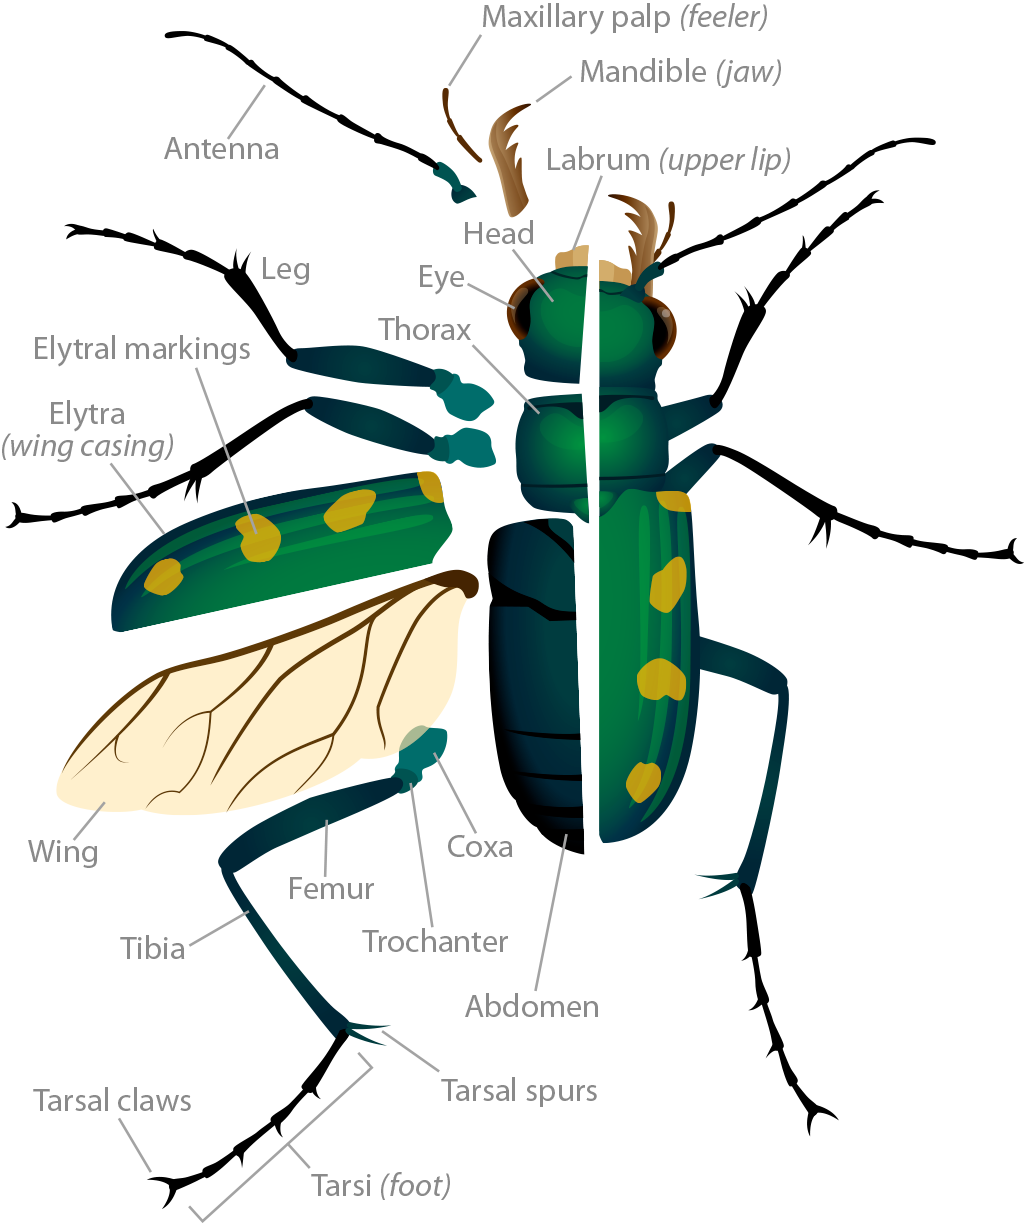 Anatomy of insects